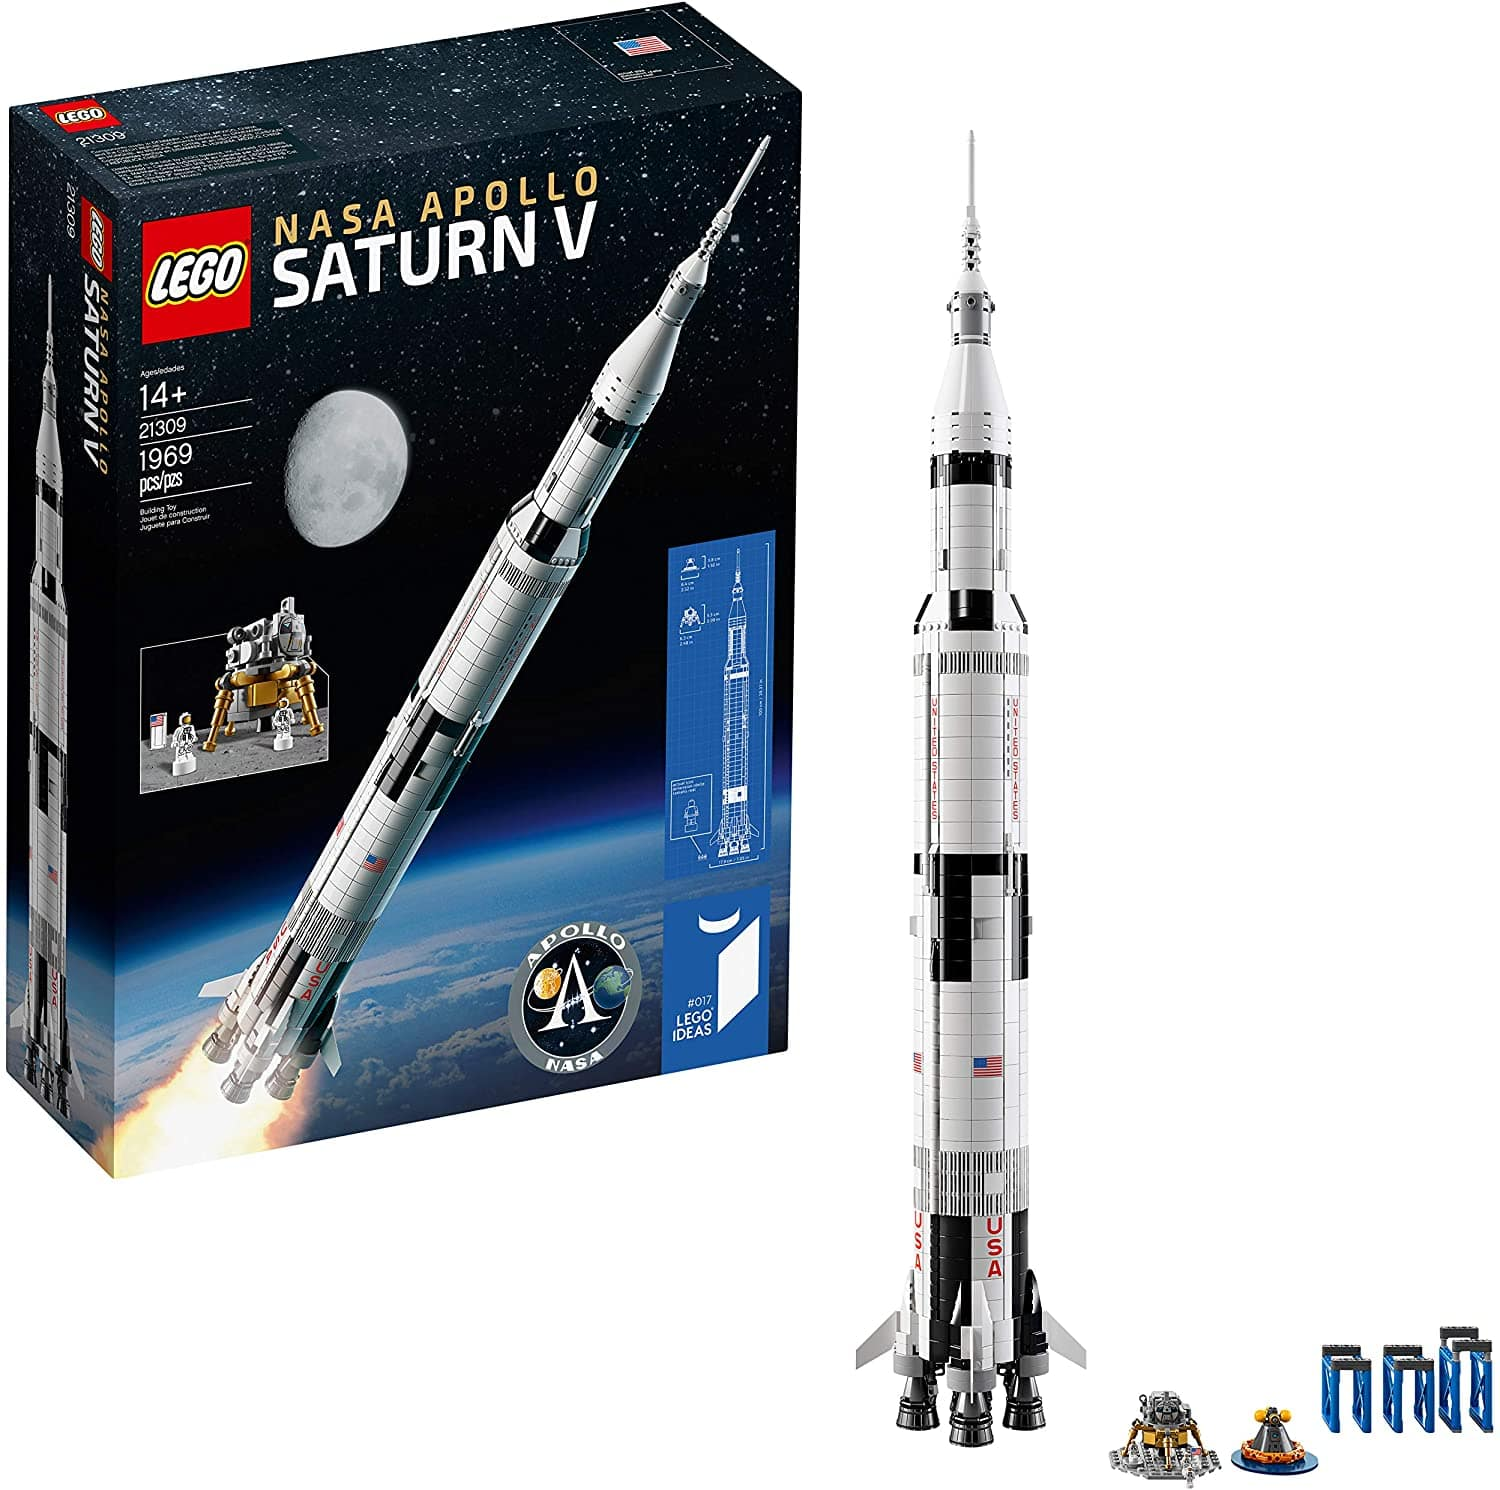 AMAZON HAS LEGO Ideas NASA Apollo Saturn V 92176 Outer Space Model Rocket for Kids and Adults, Science Building Kit (1969 Pieces) FOR $119.99